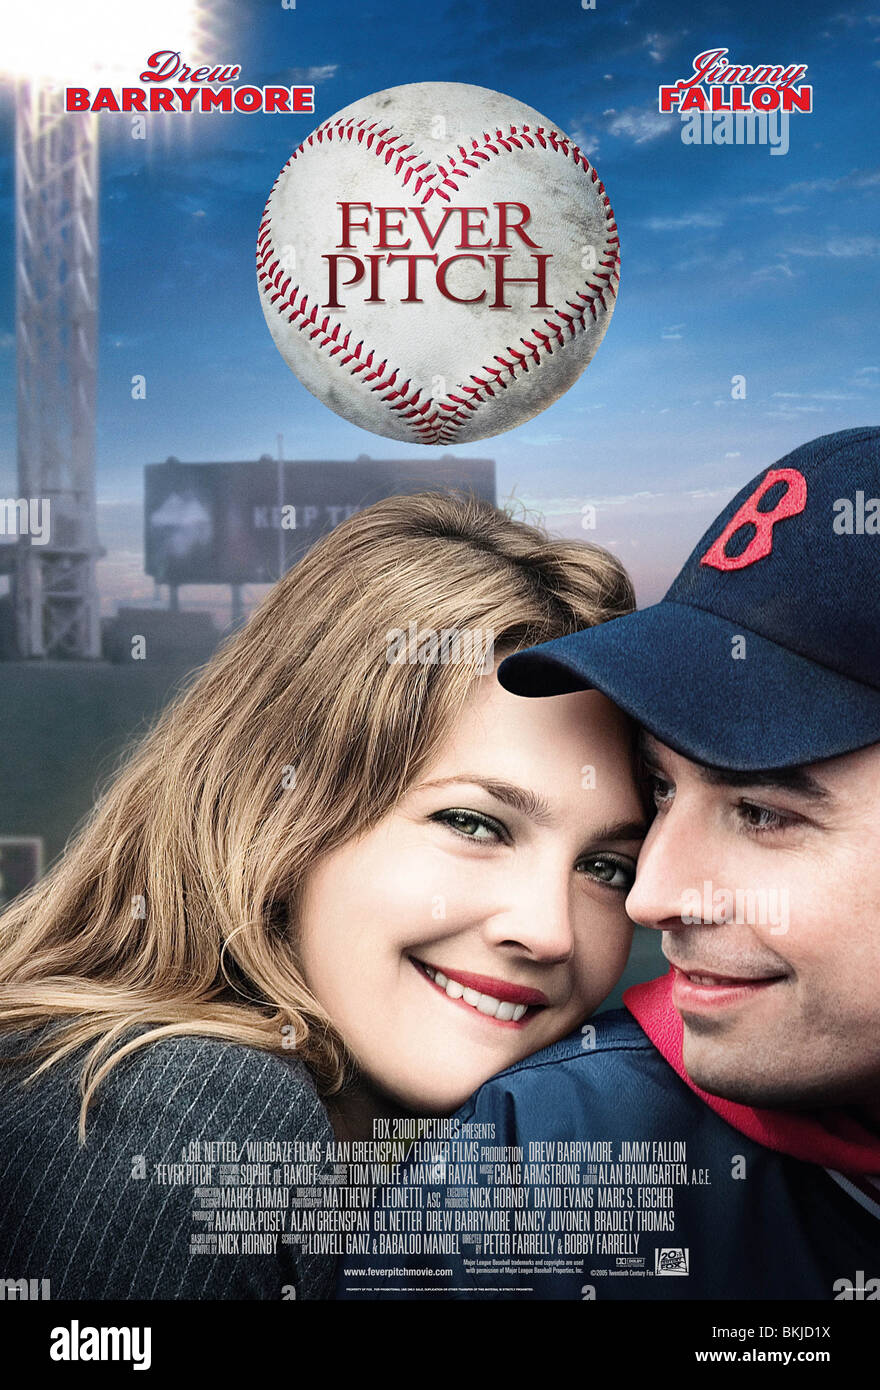 FEVER PITCH -2005 POSTER - Stock Image